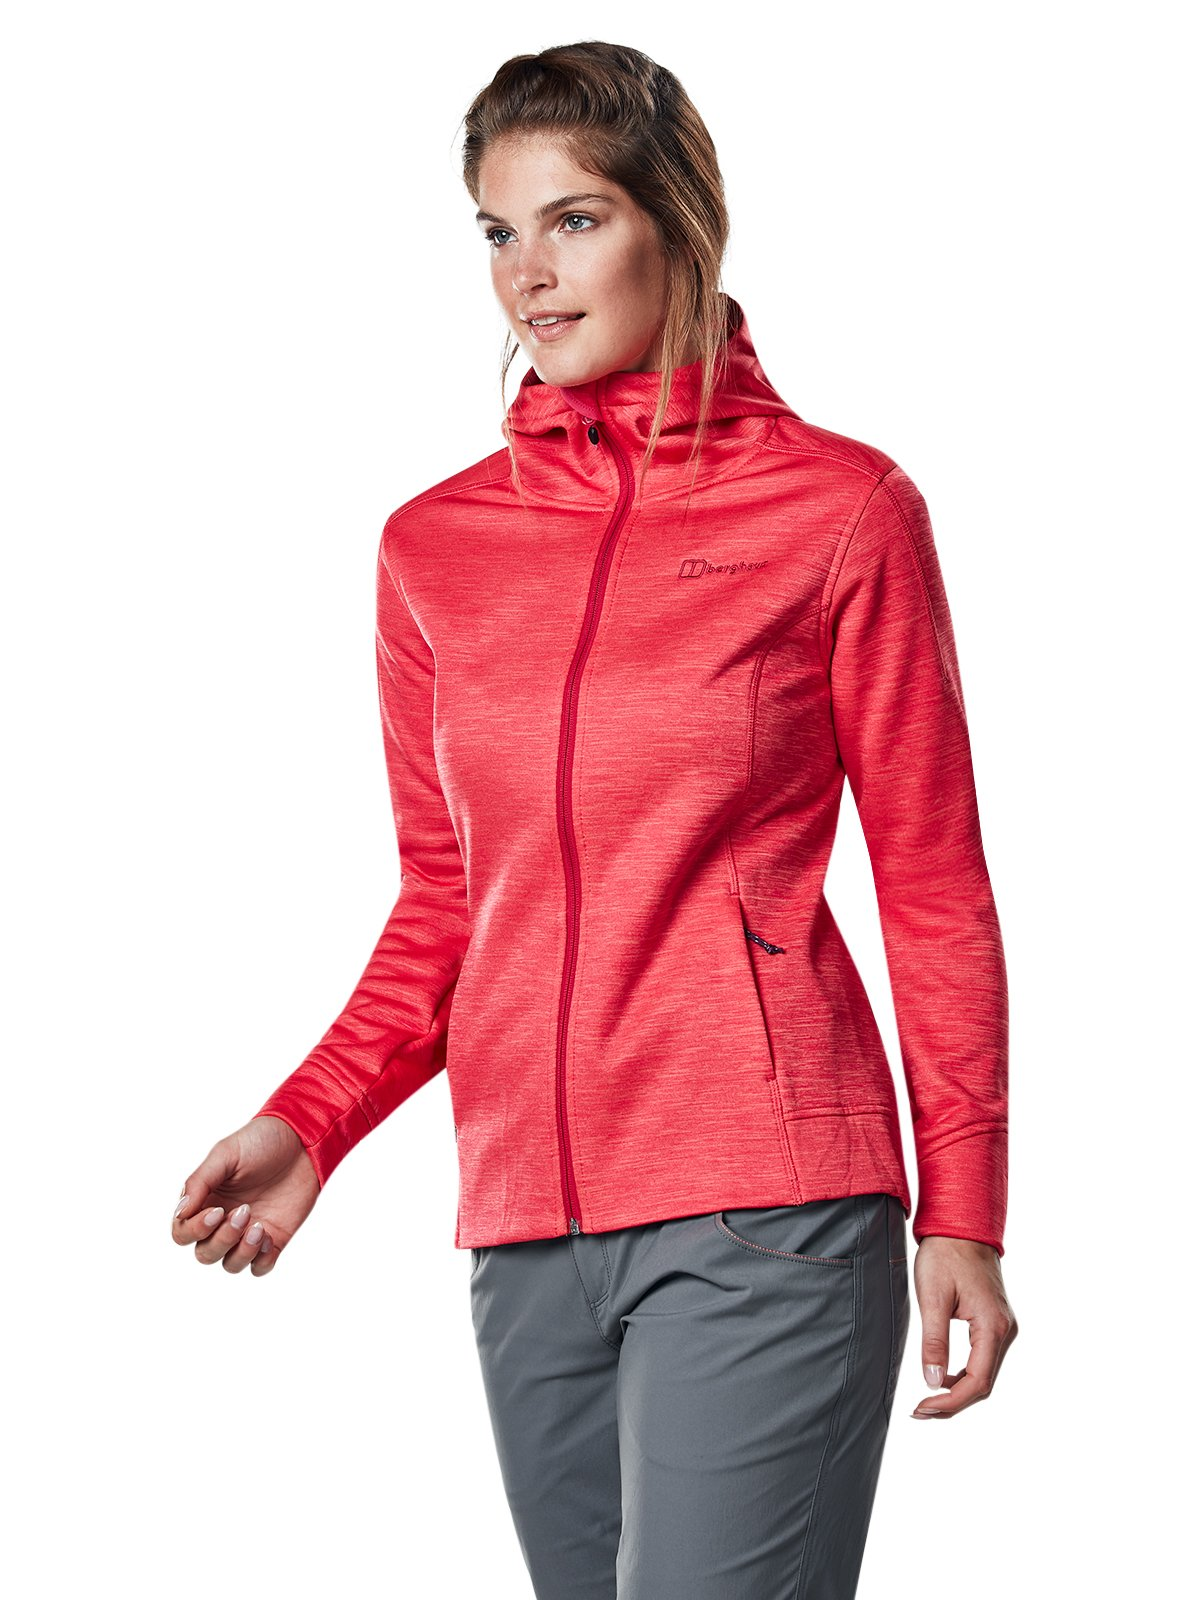 71F3U2v8UyL - Berghaus Women's Kamloops Full Zip Fleece Jacket